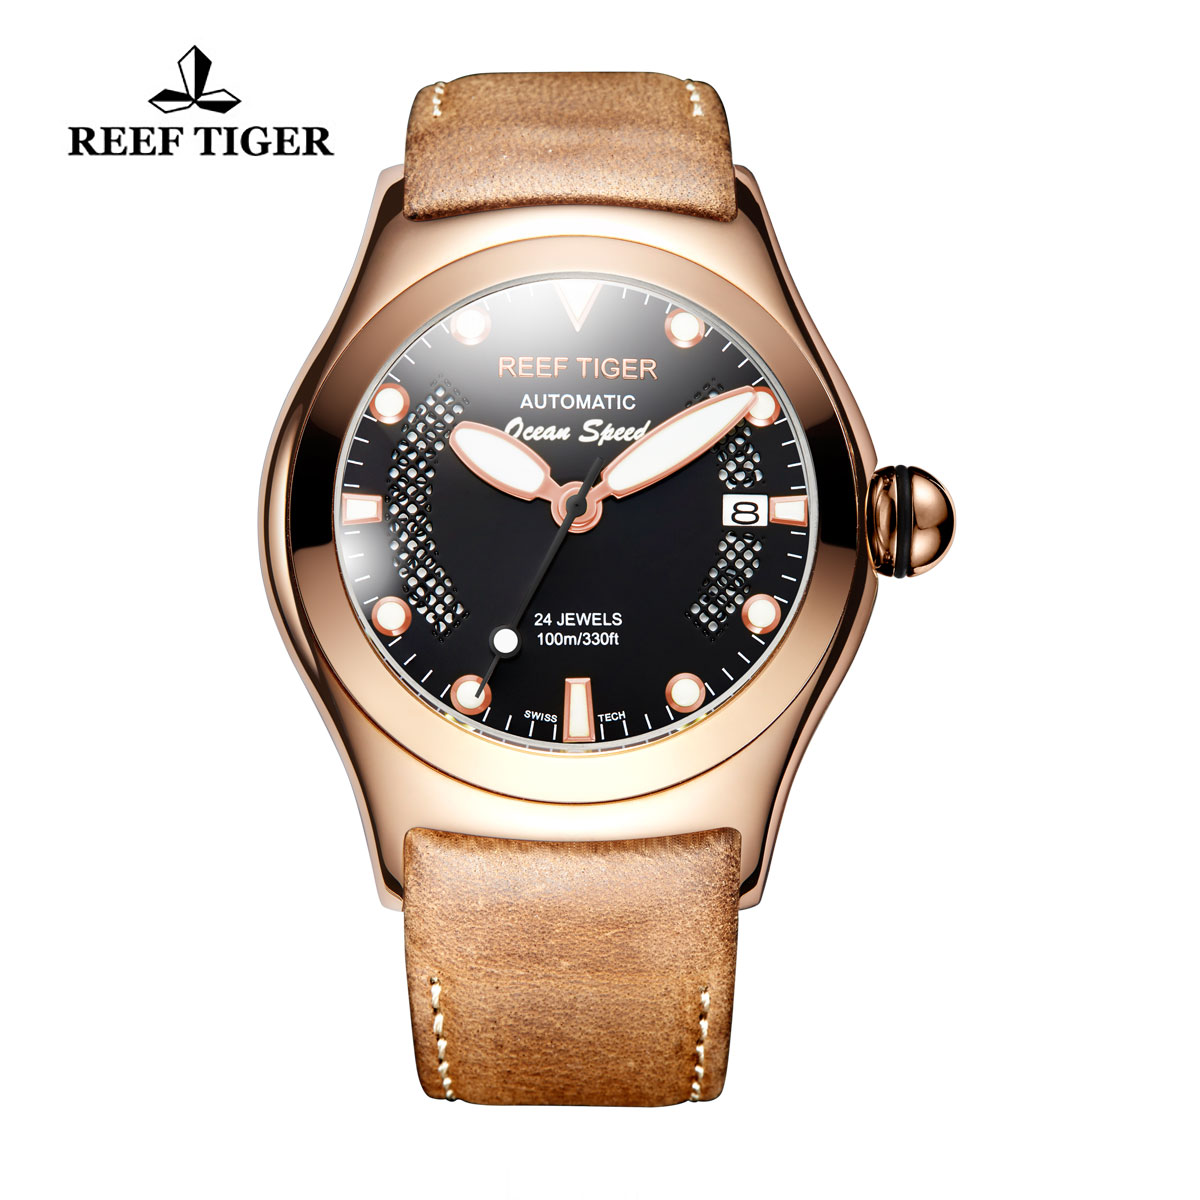 Reef Tiger Ocean Speed Sport Watches Automatic Leather Strap Black Dial Rose Gold Case Watch RGA704-PBBPB